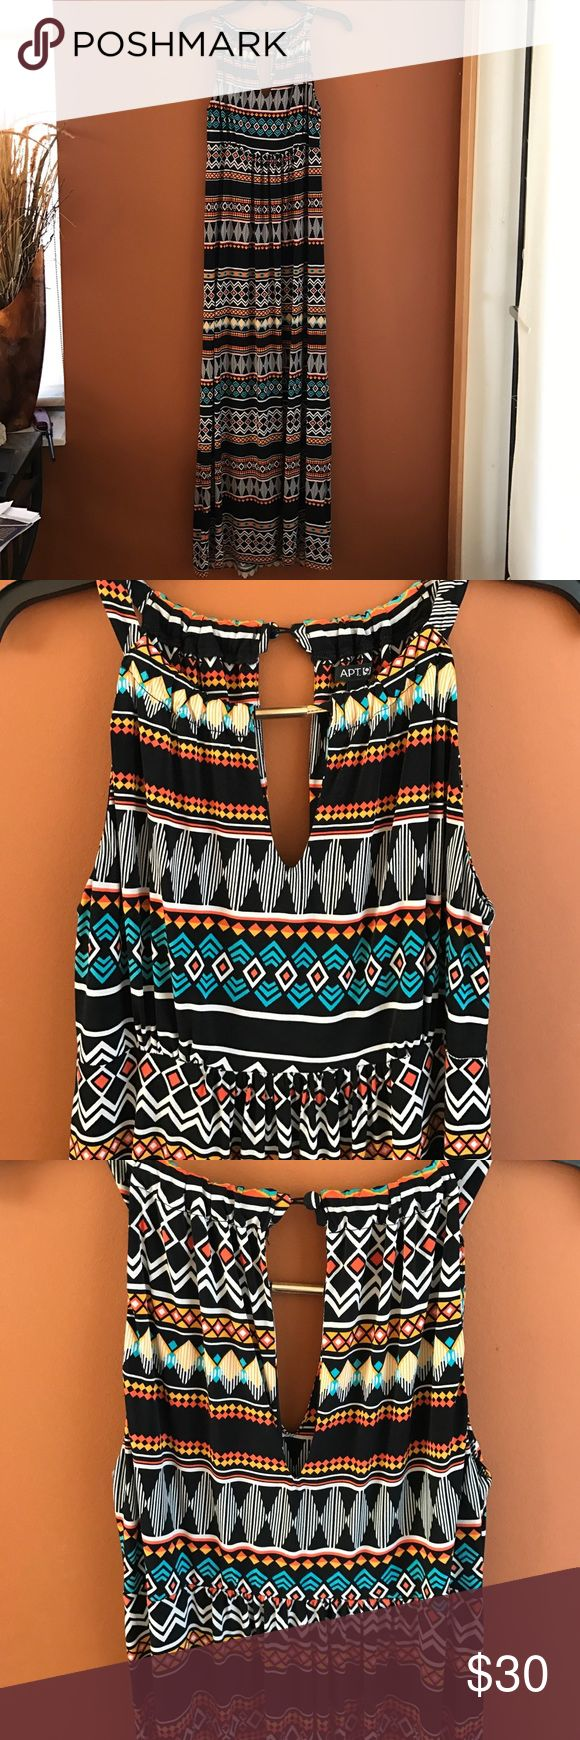 Tribal Maxi dress Apt 9 Maxi dress. In great condition! Apt. 9 Dresses Maxi